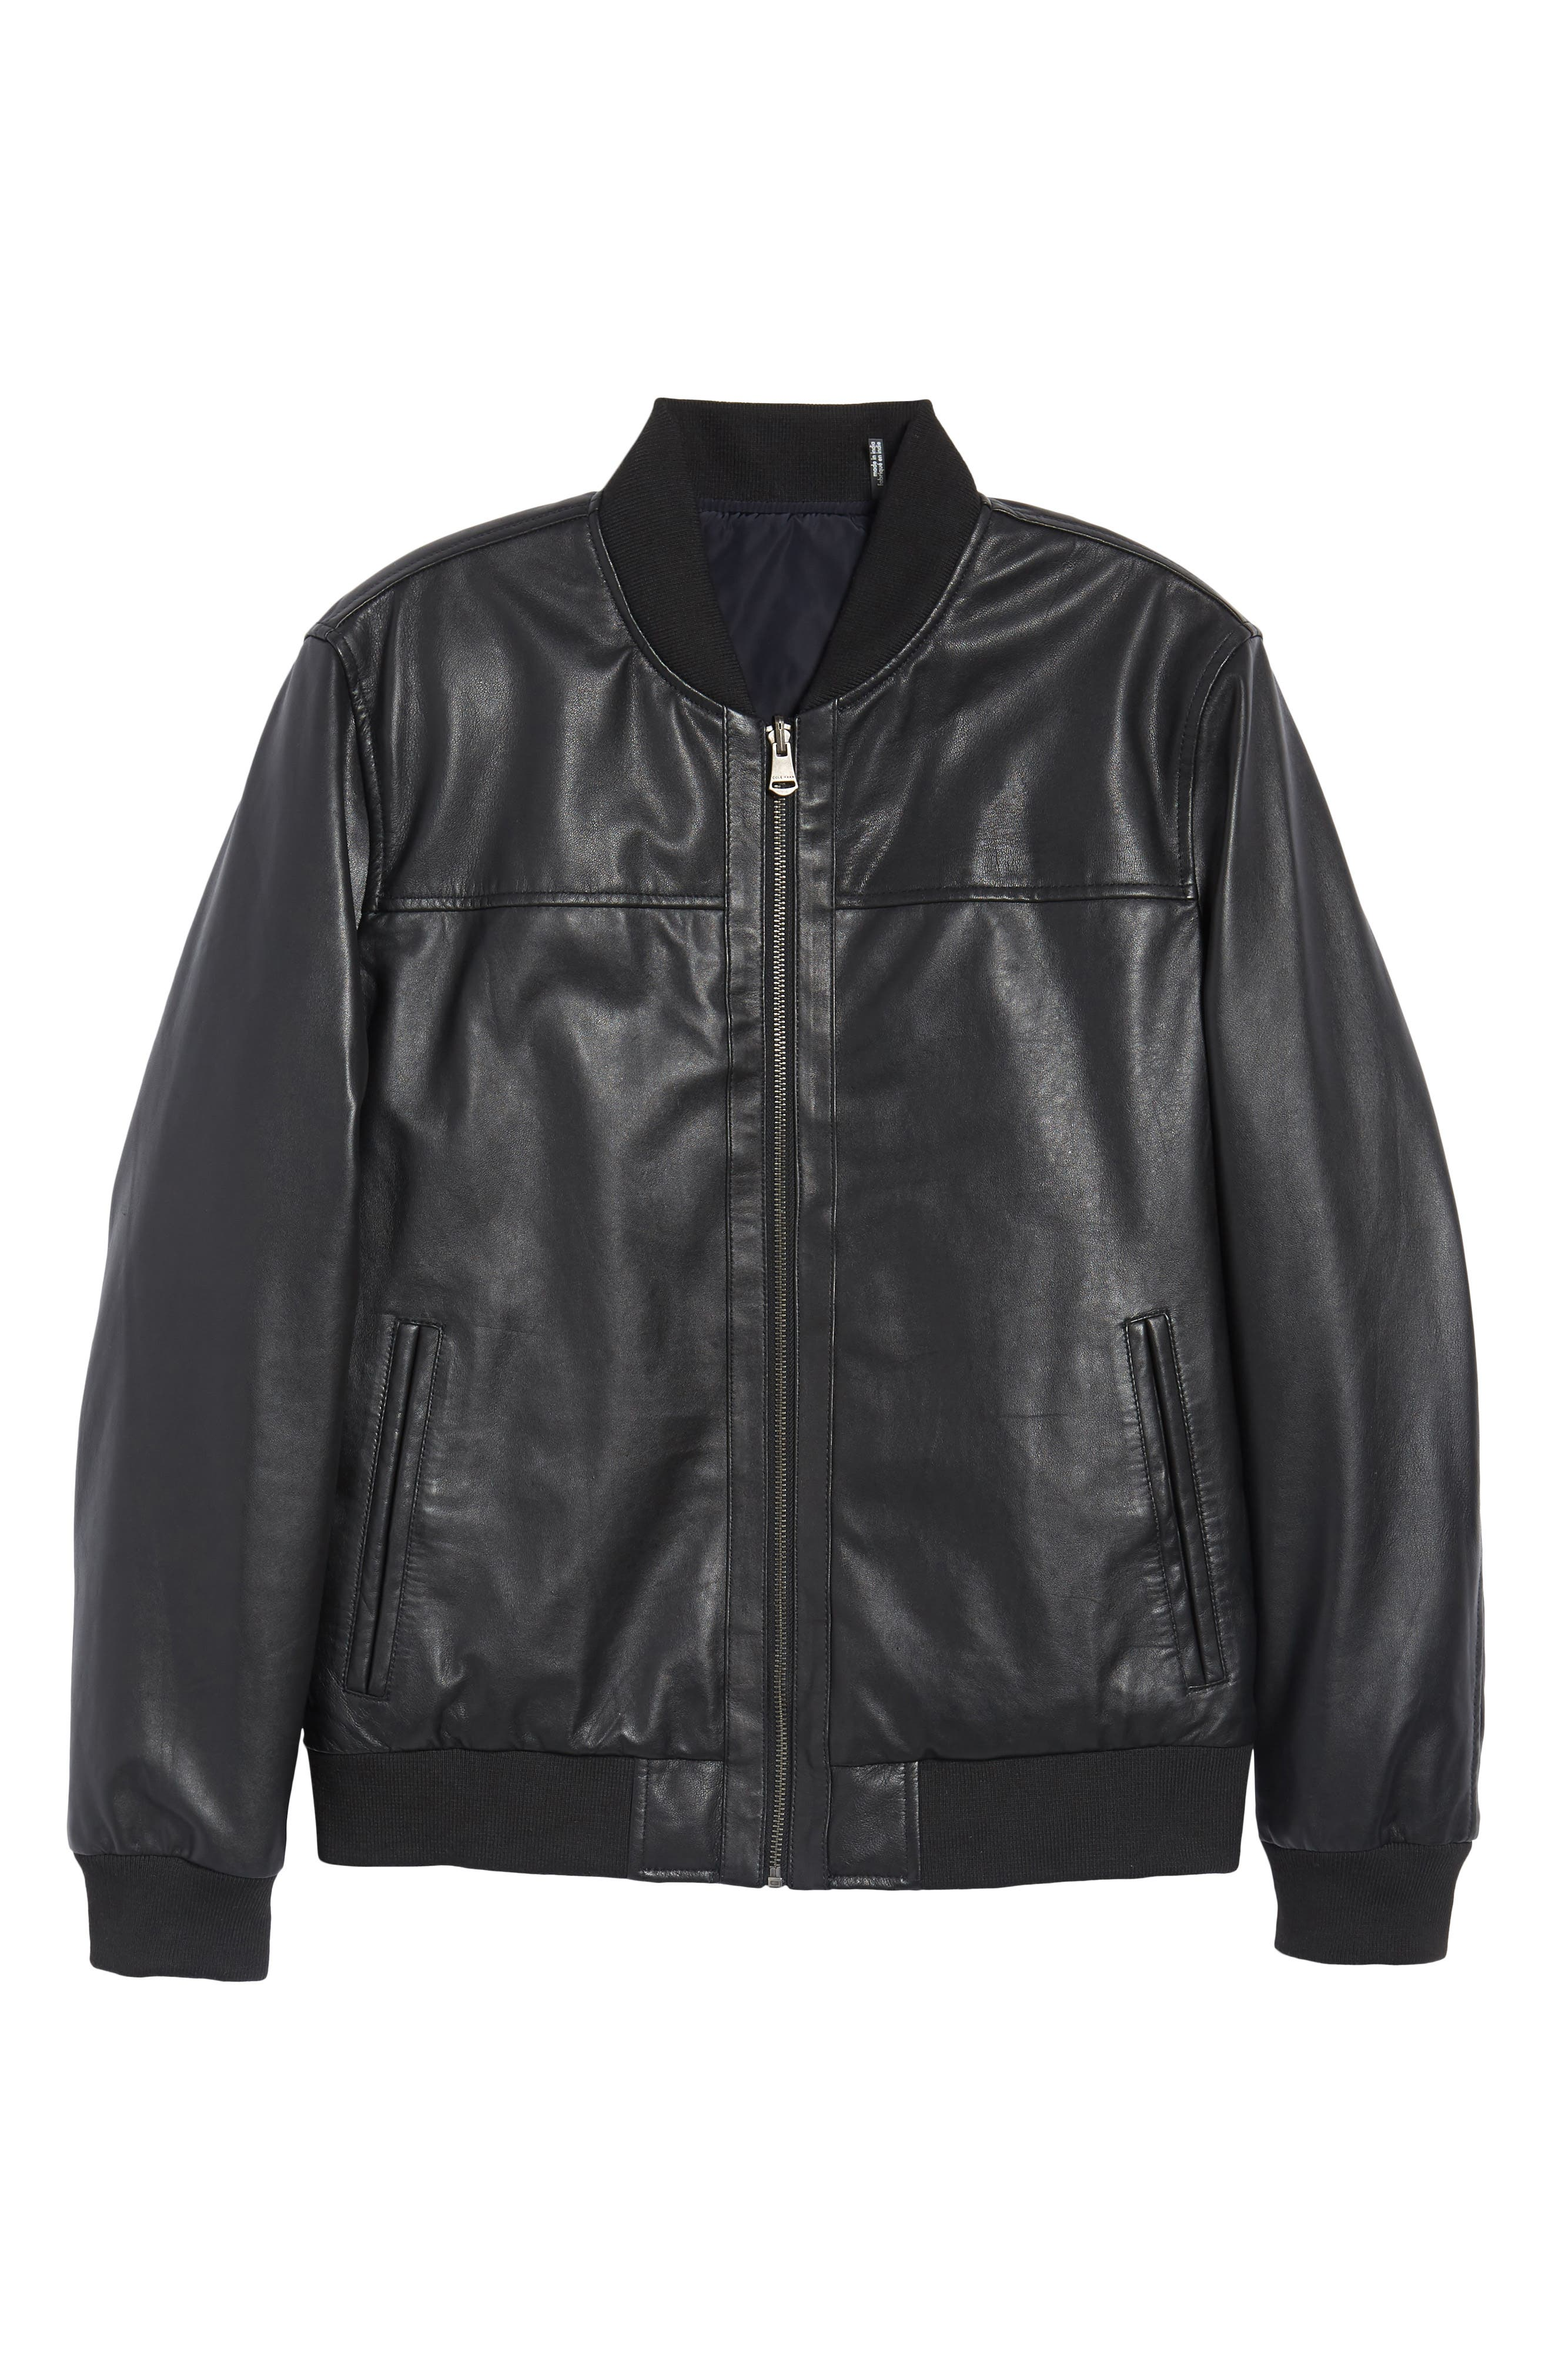 Reversible Leather Jacket,                             Alternate thumbnail 6, color,                             014